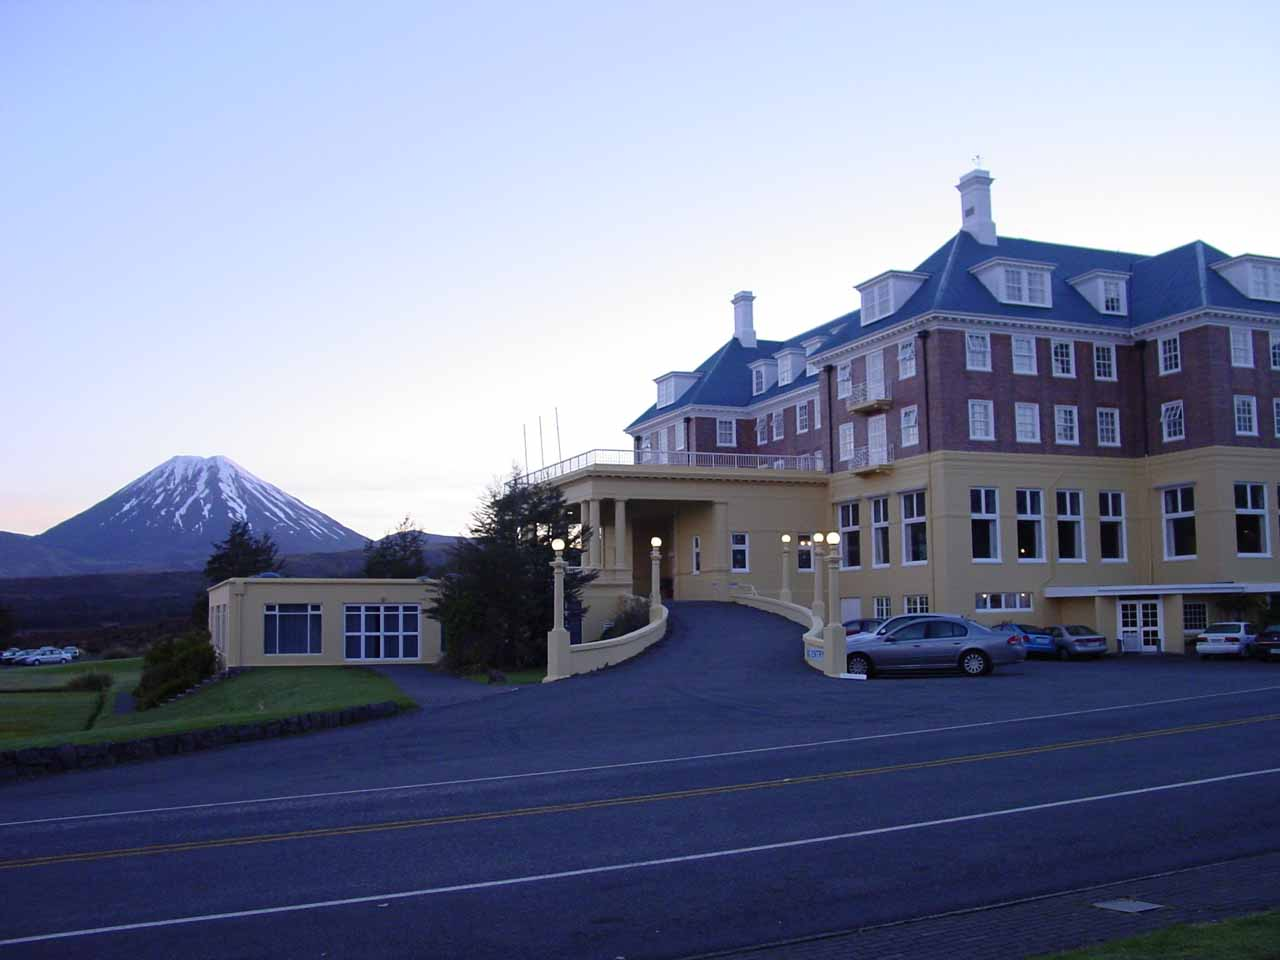 The Chateau Tongariro with Mt Ngauruhoe